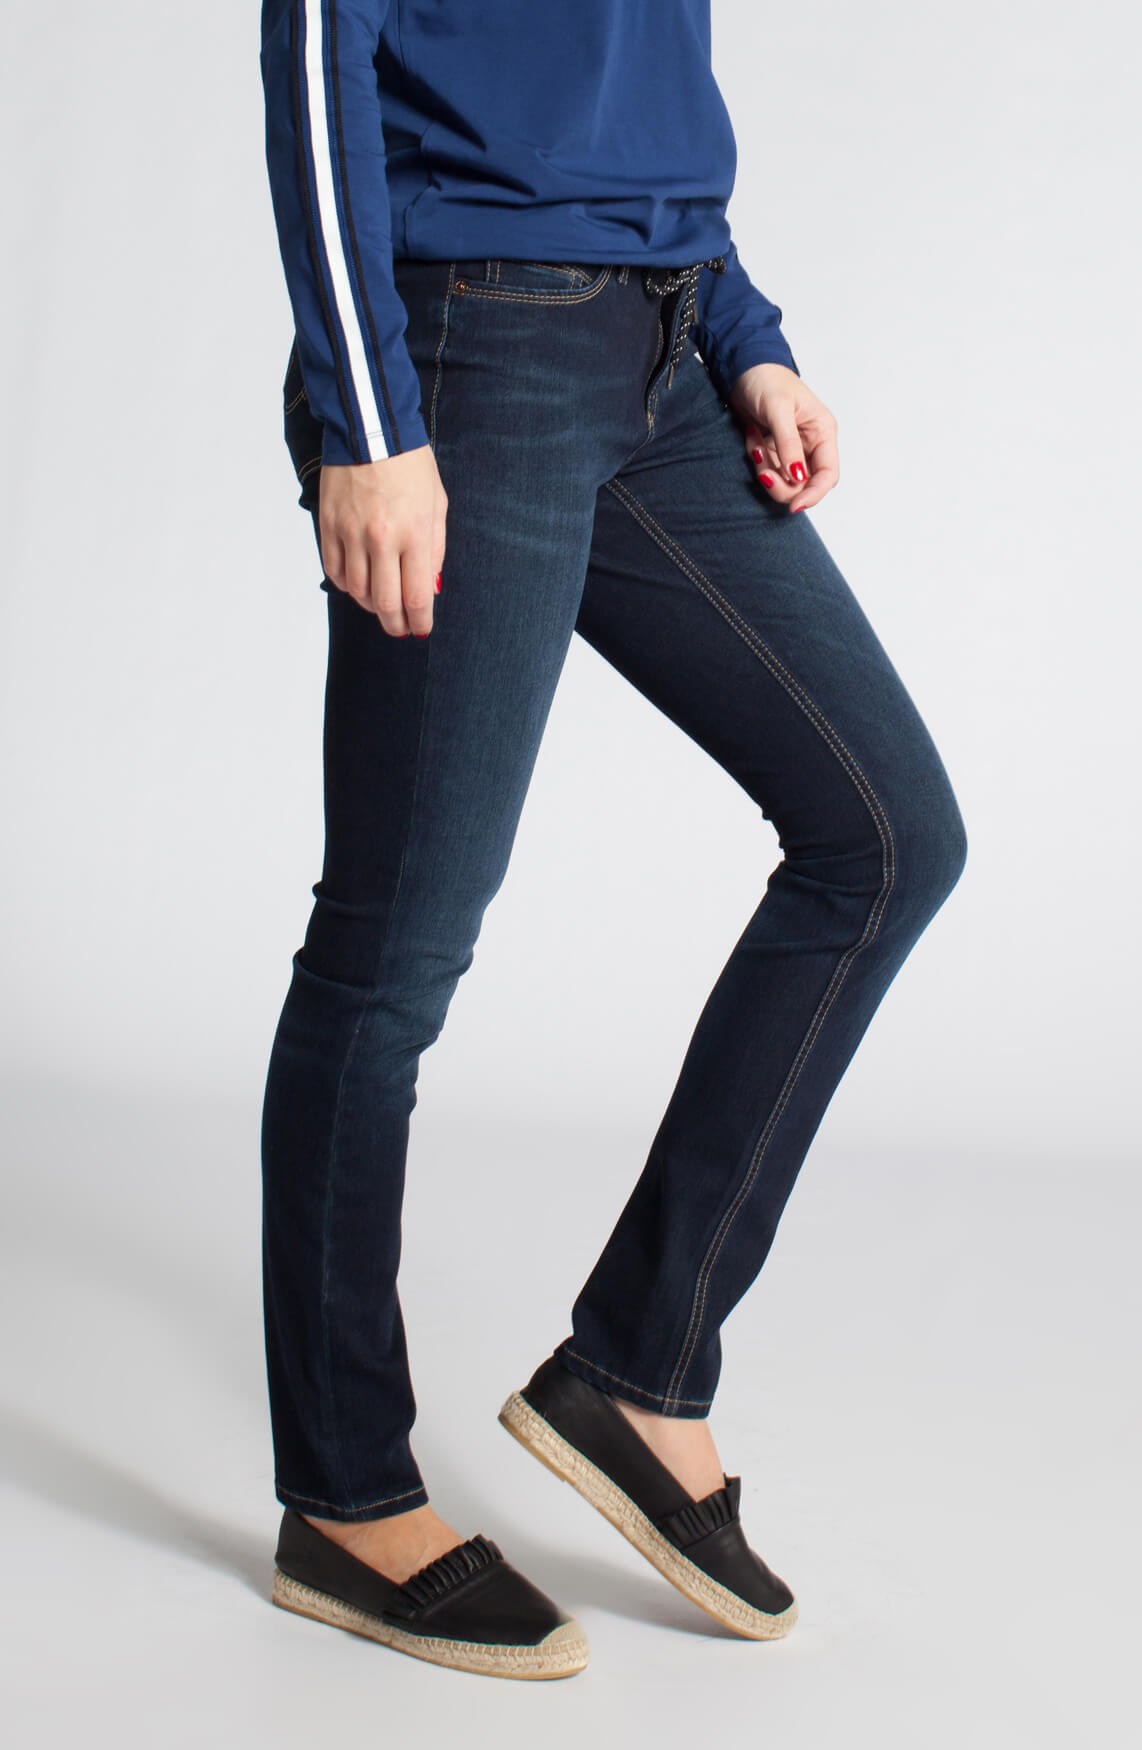 Cambio Dames Parla donkere jeans